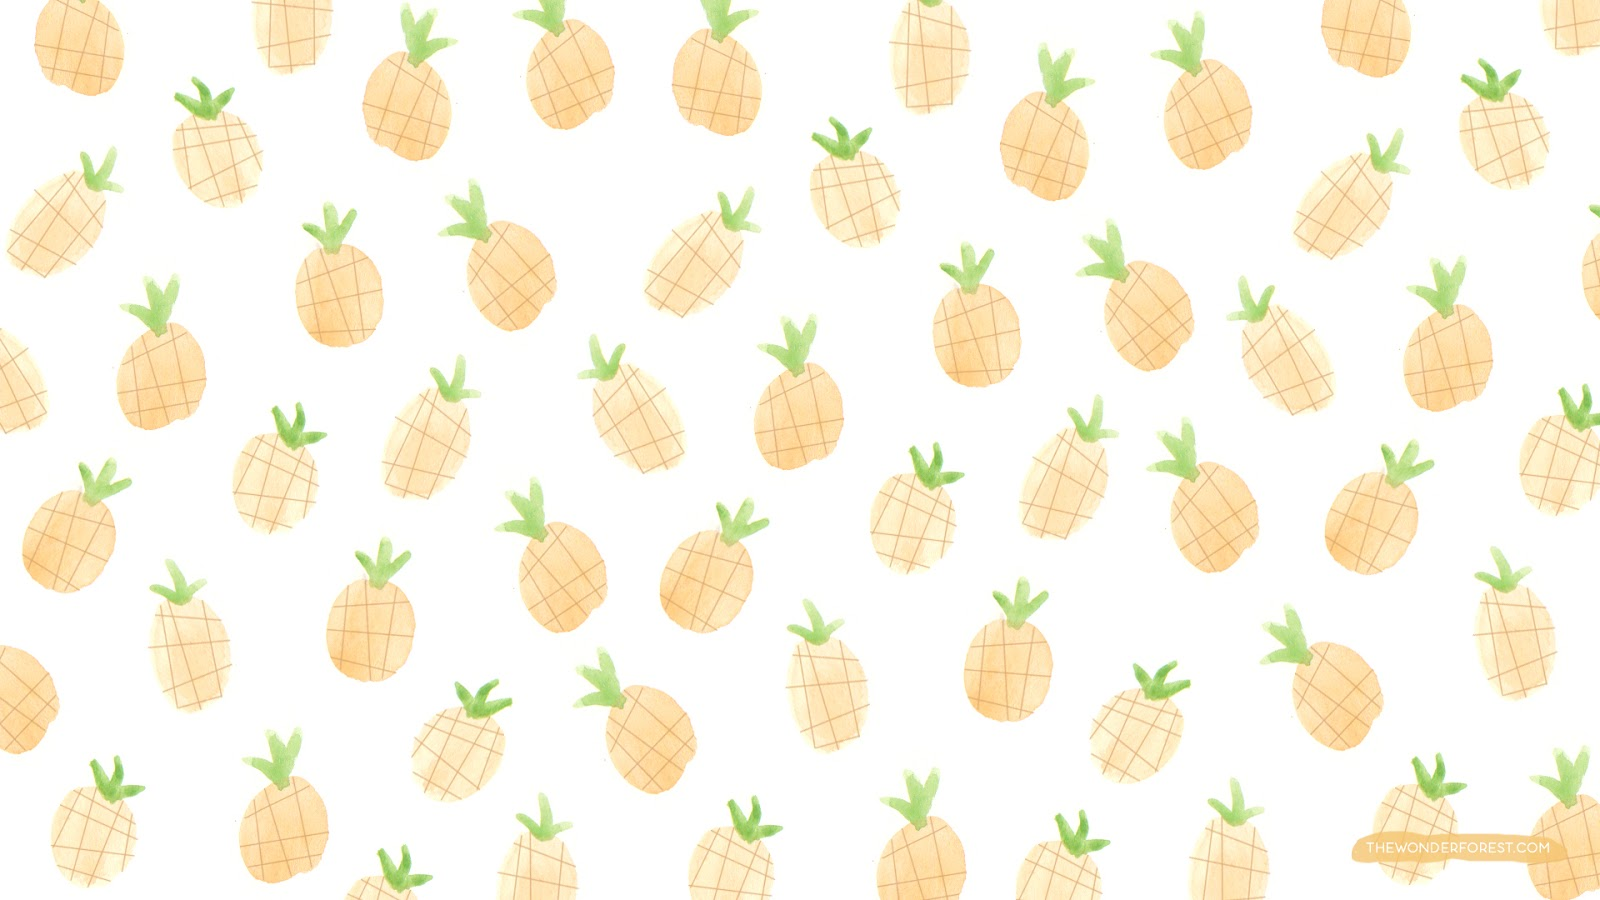 Amazing Wallpaper Macbook Pineapple - PineappleDesktop  Perfect Image Reference_866551.jpg